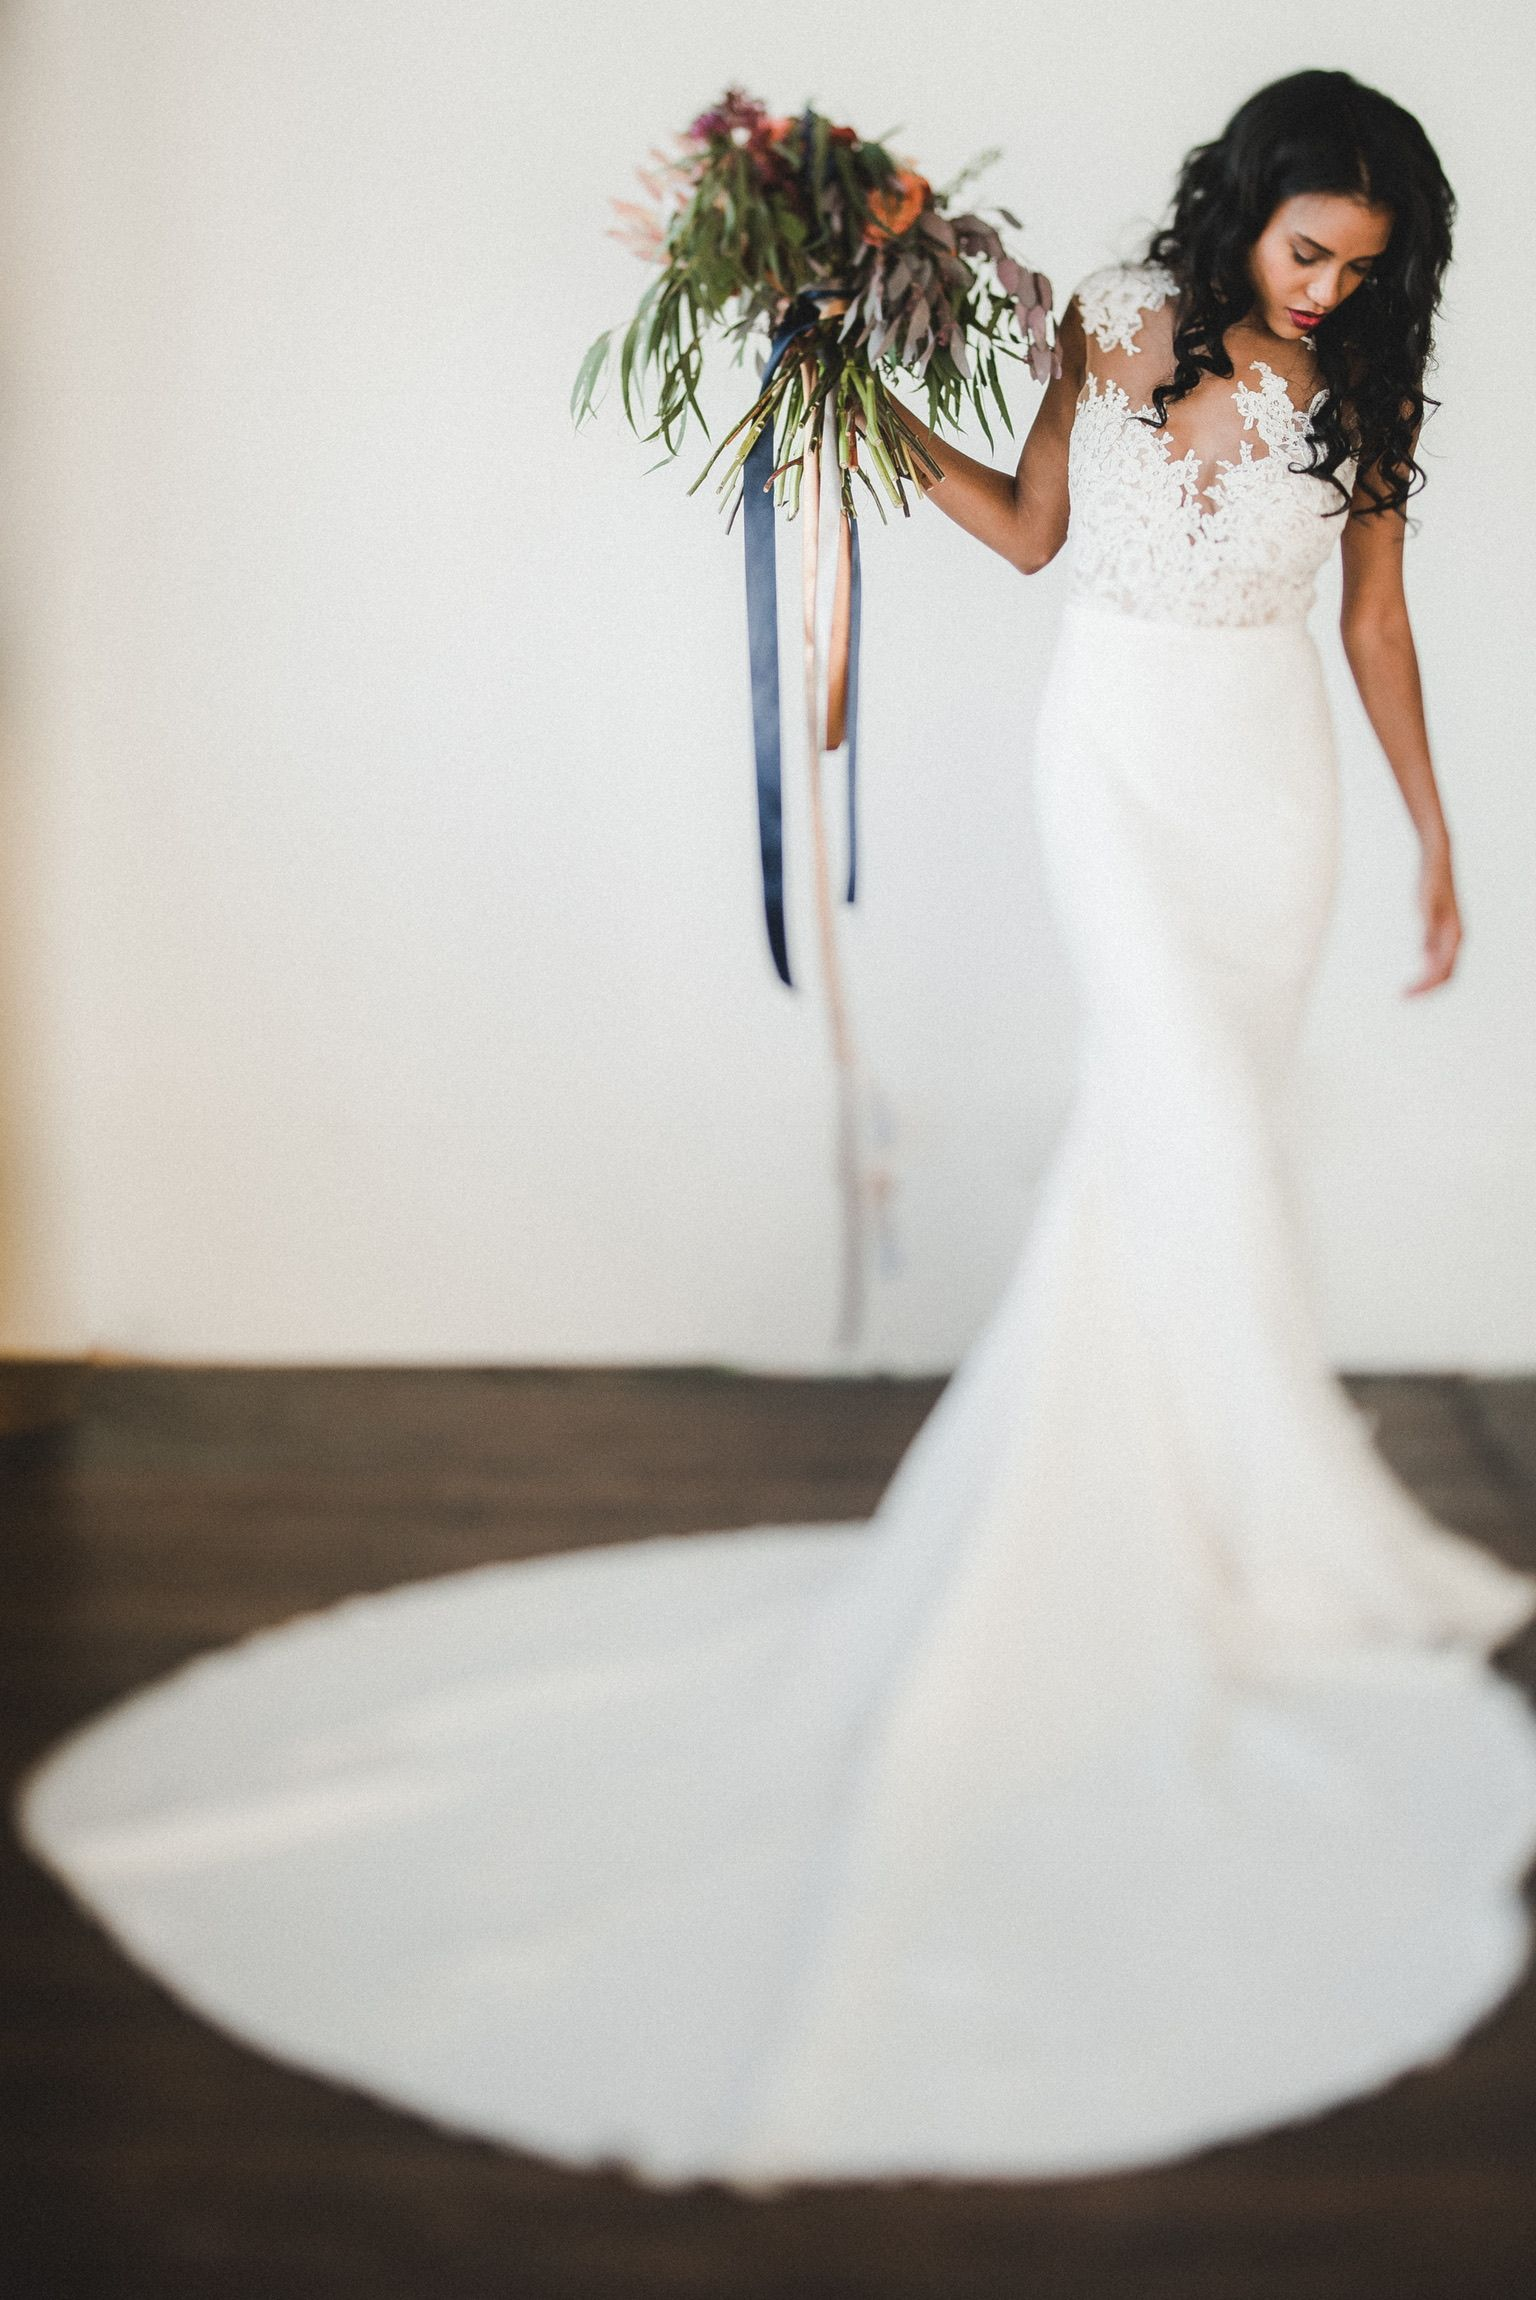 The Gorgeous Pronovias Vicenta Gown Available At The White Room